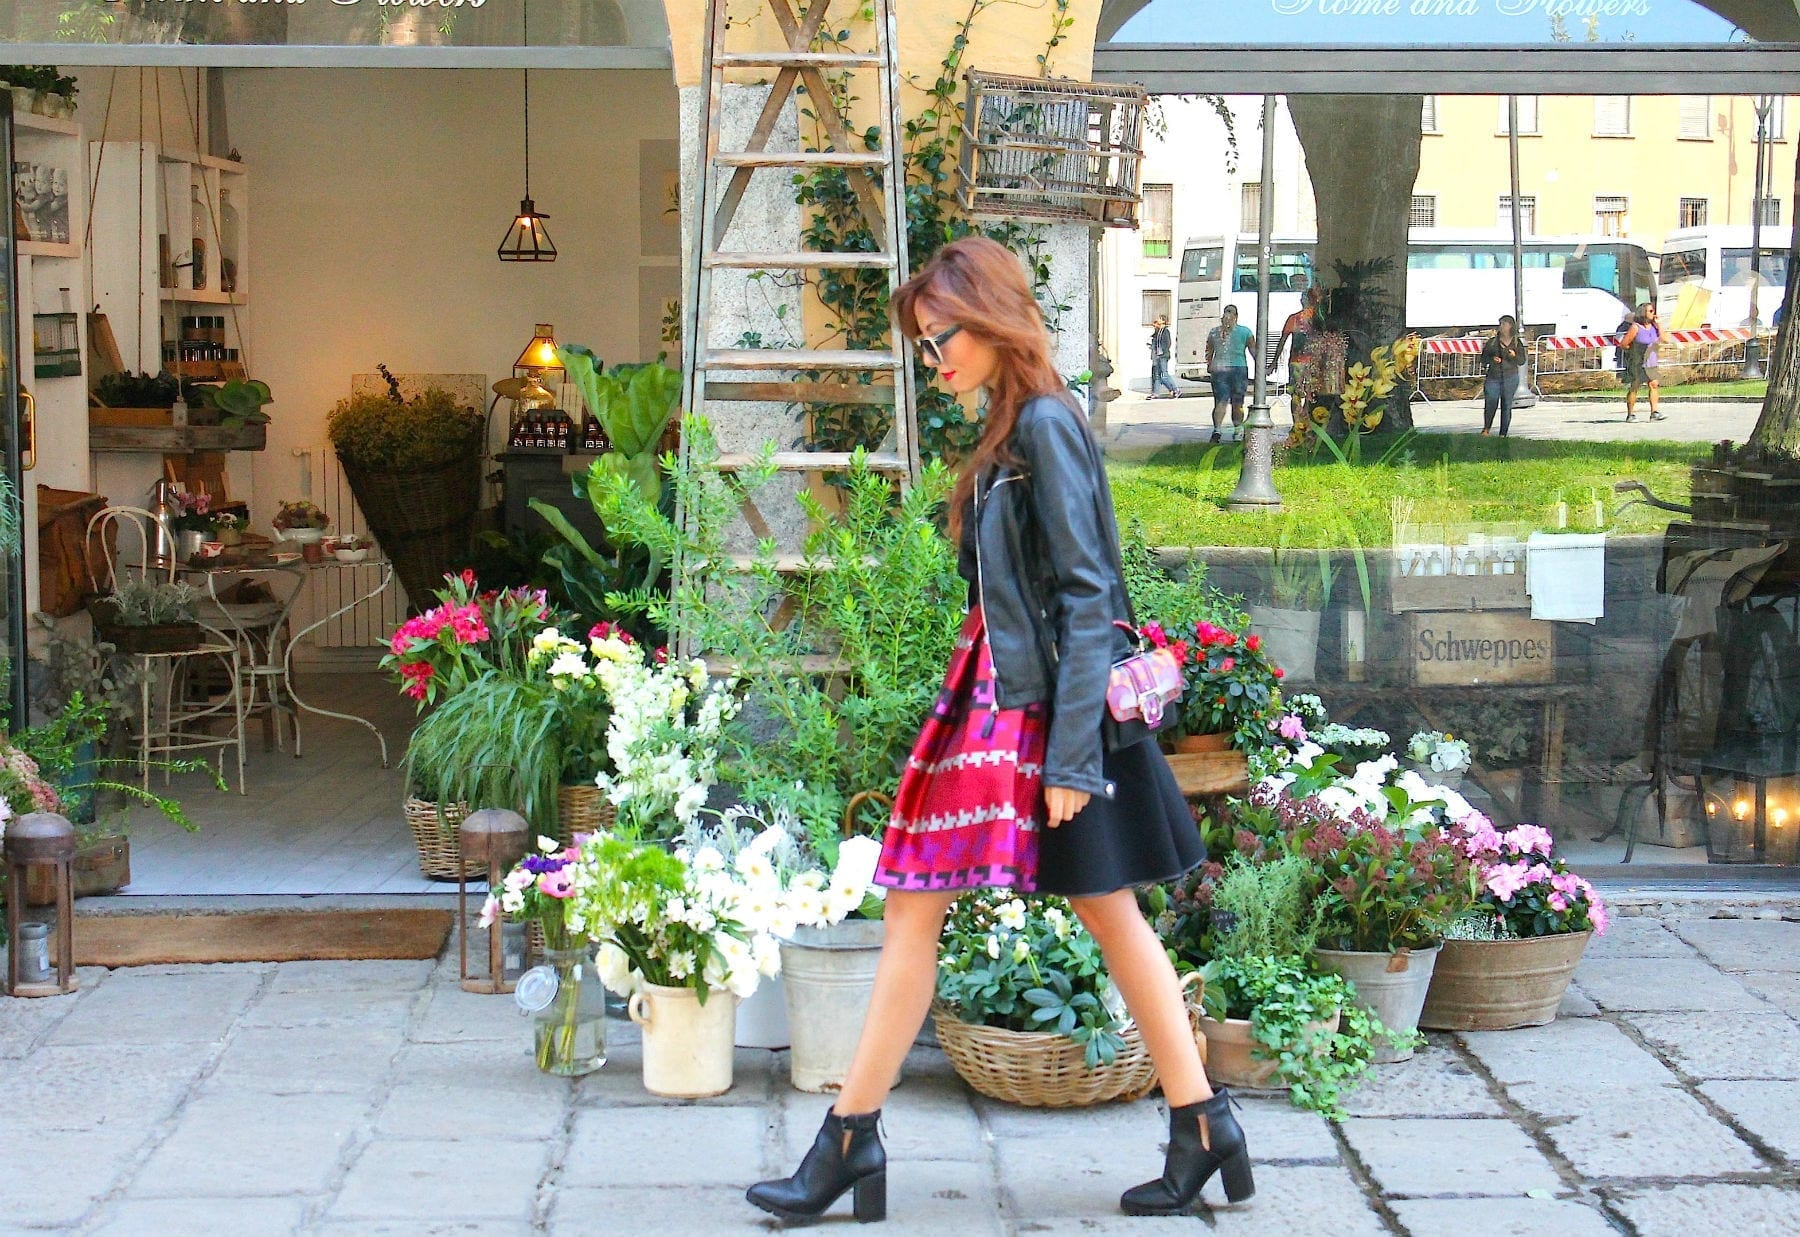 blogger famose, theladycracy.it, elisa bellino, mfw outfit street style, gabriele fiorucci, fashion blogger italiane, o